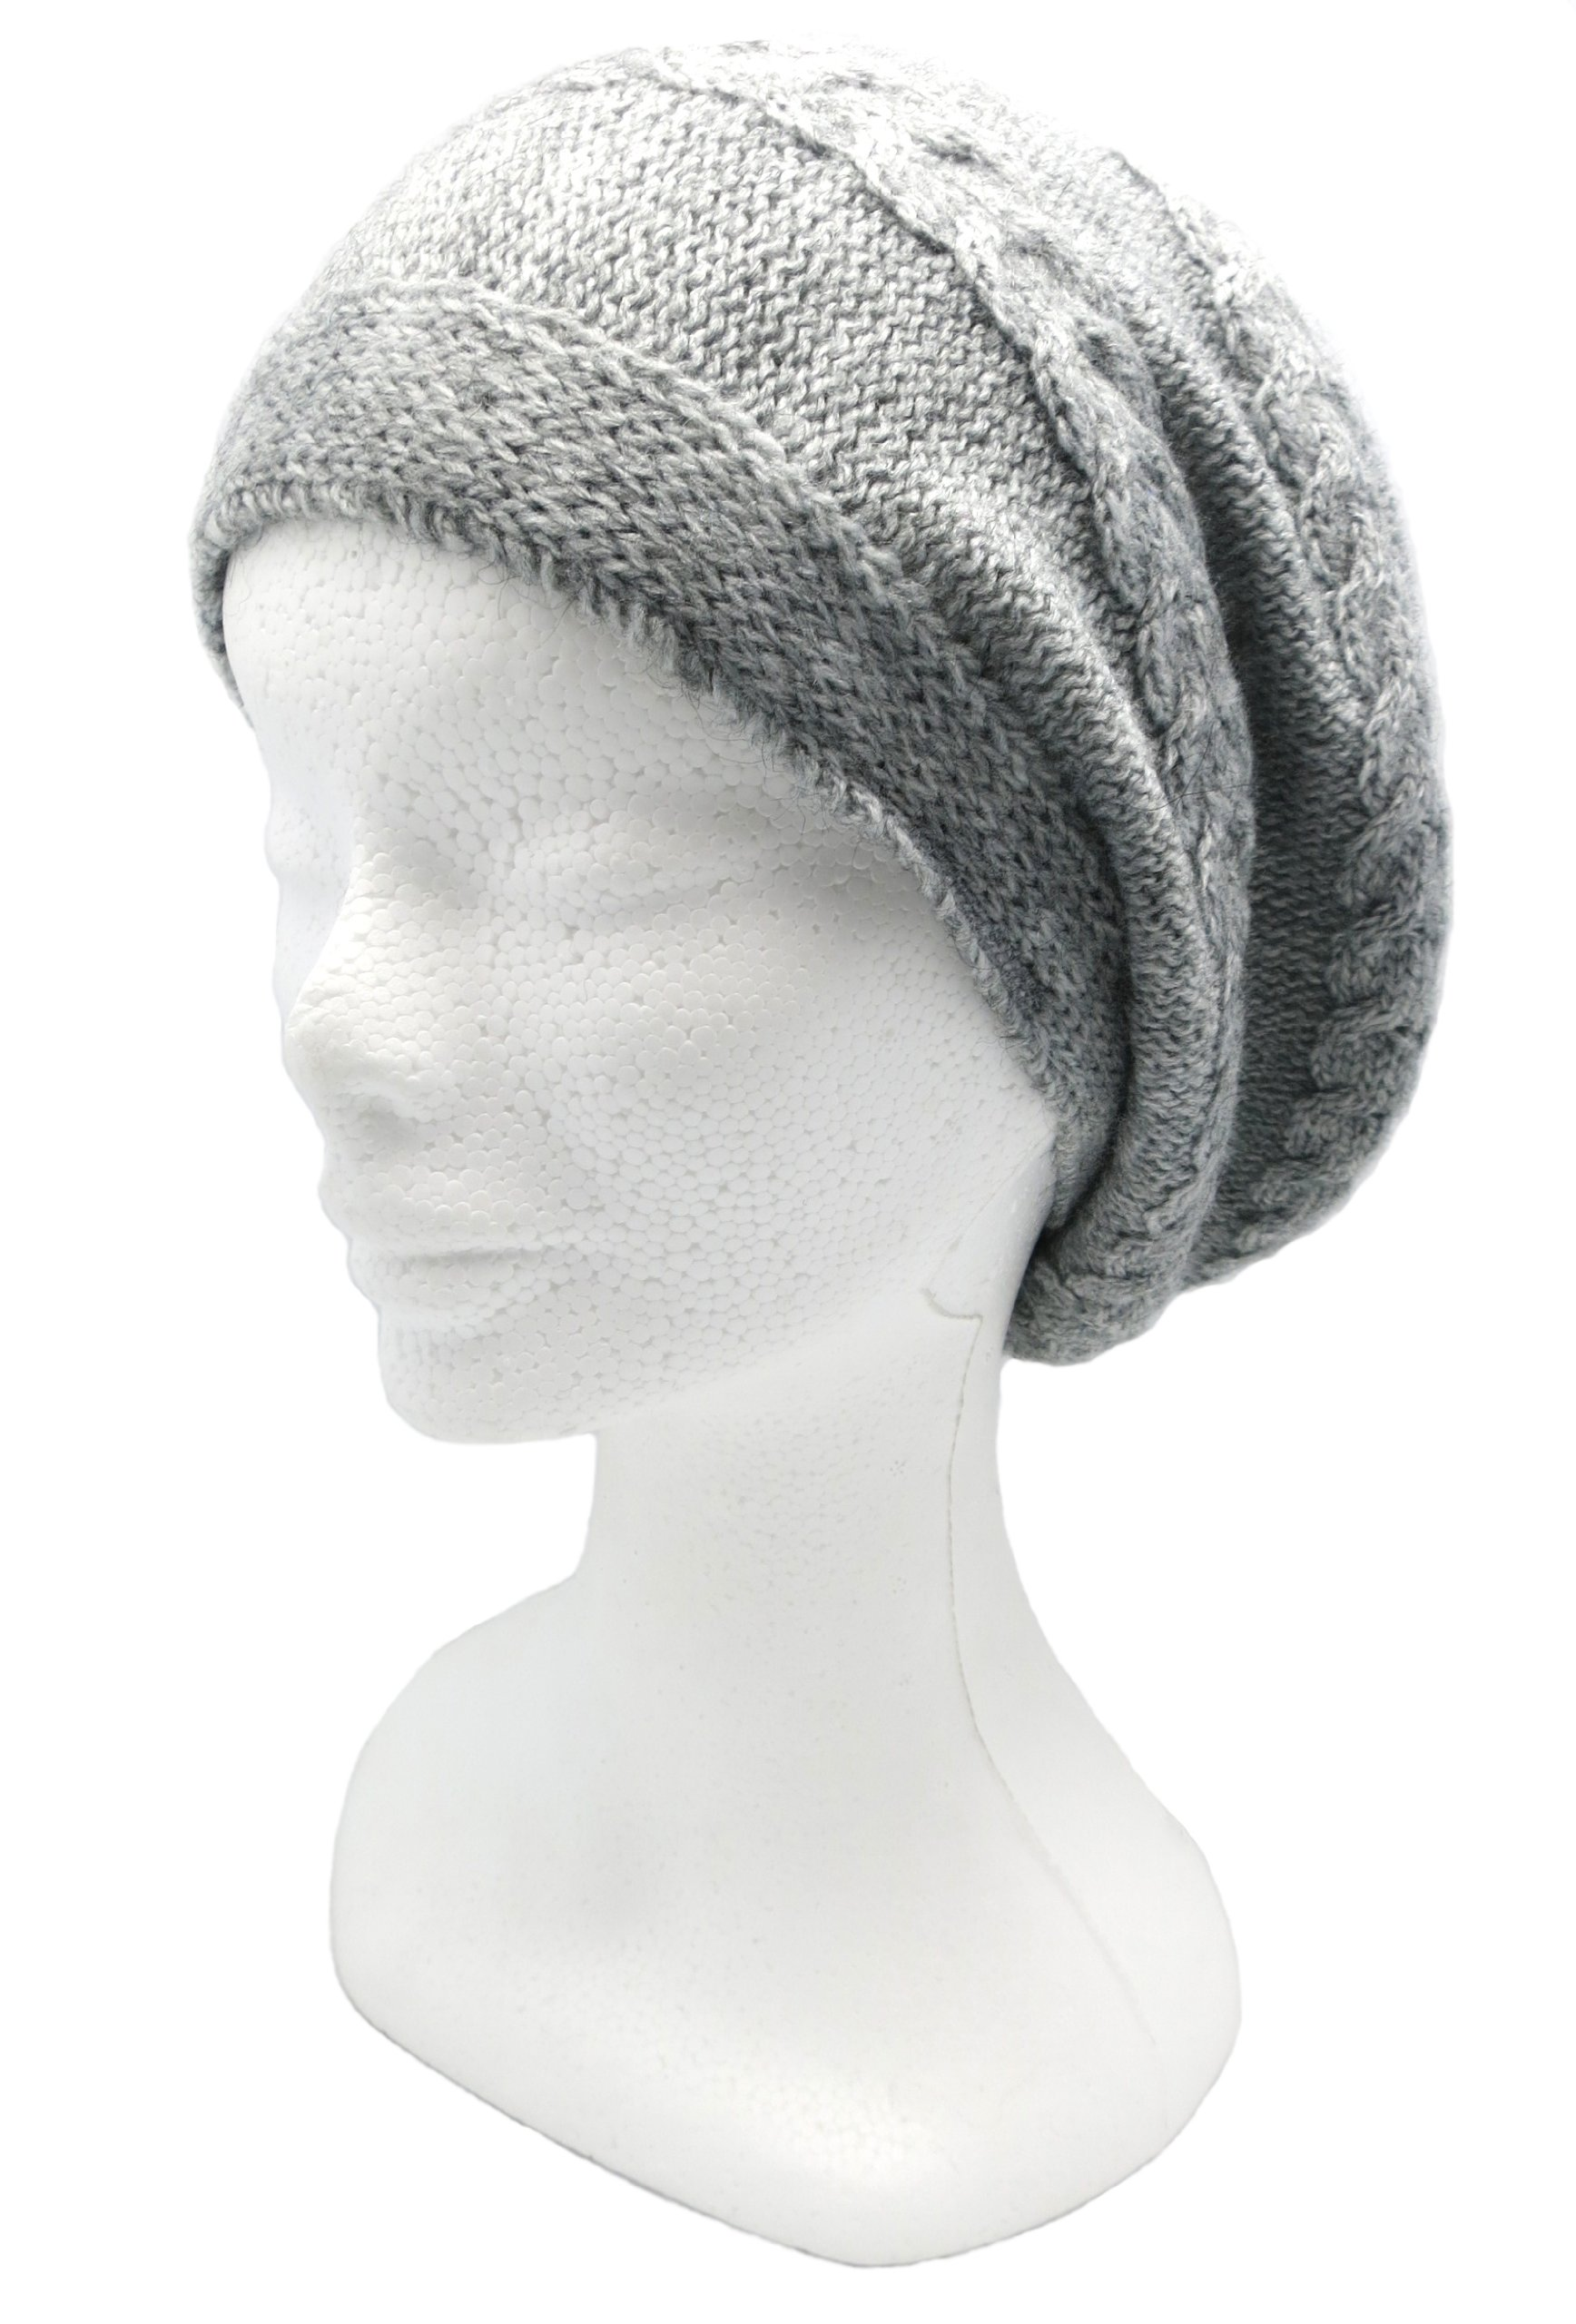 Handmade Thin PURE Alpaca Slouchy Beret Hat - French Gray (Made to Order) by BARBERY Alpaca Accessories